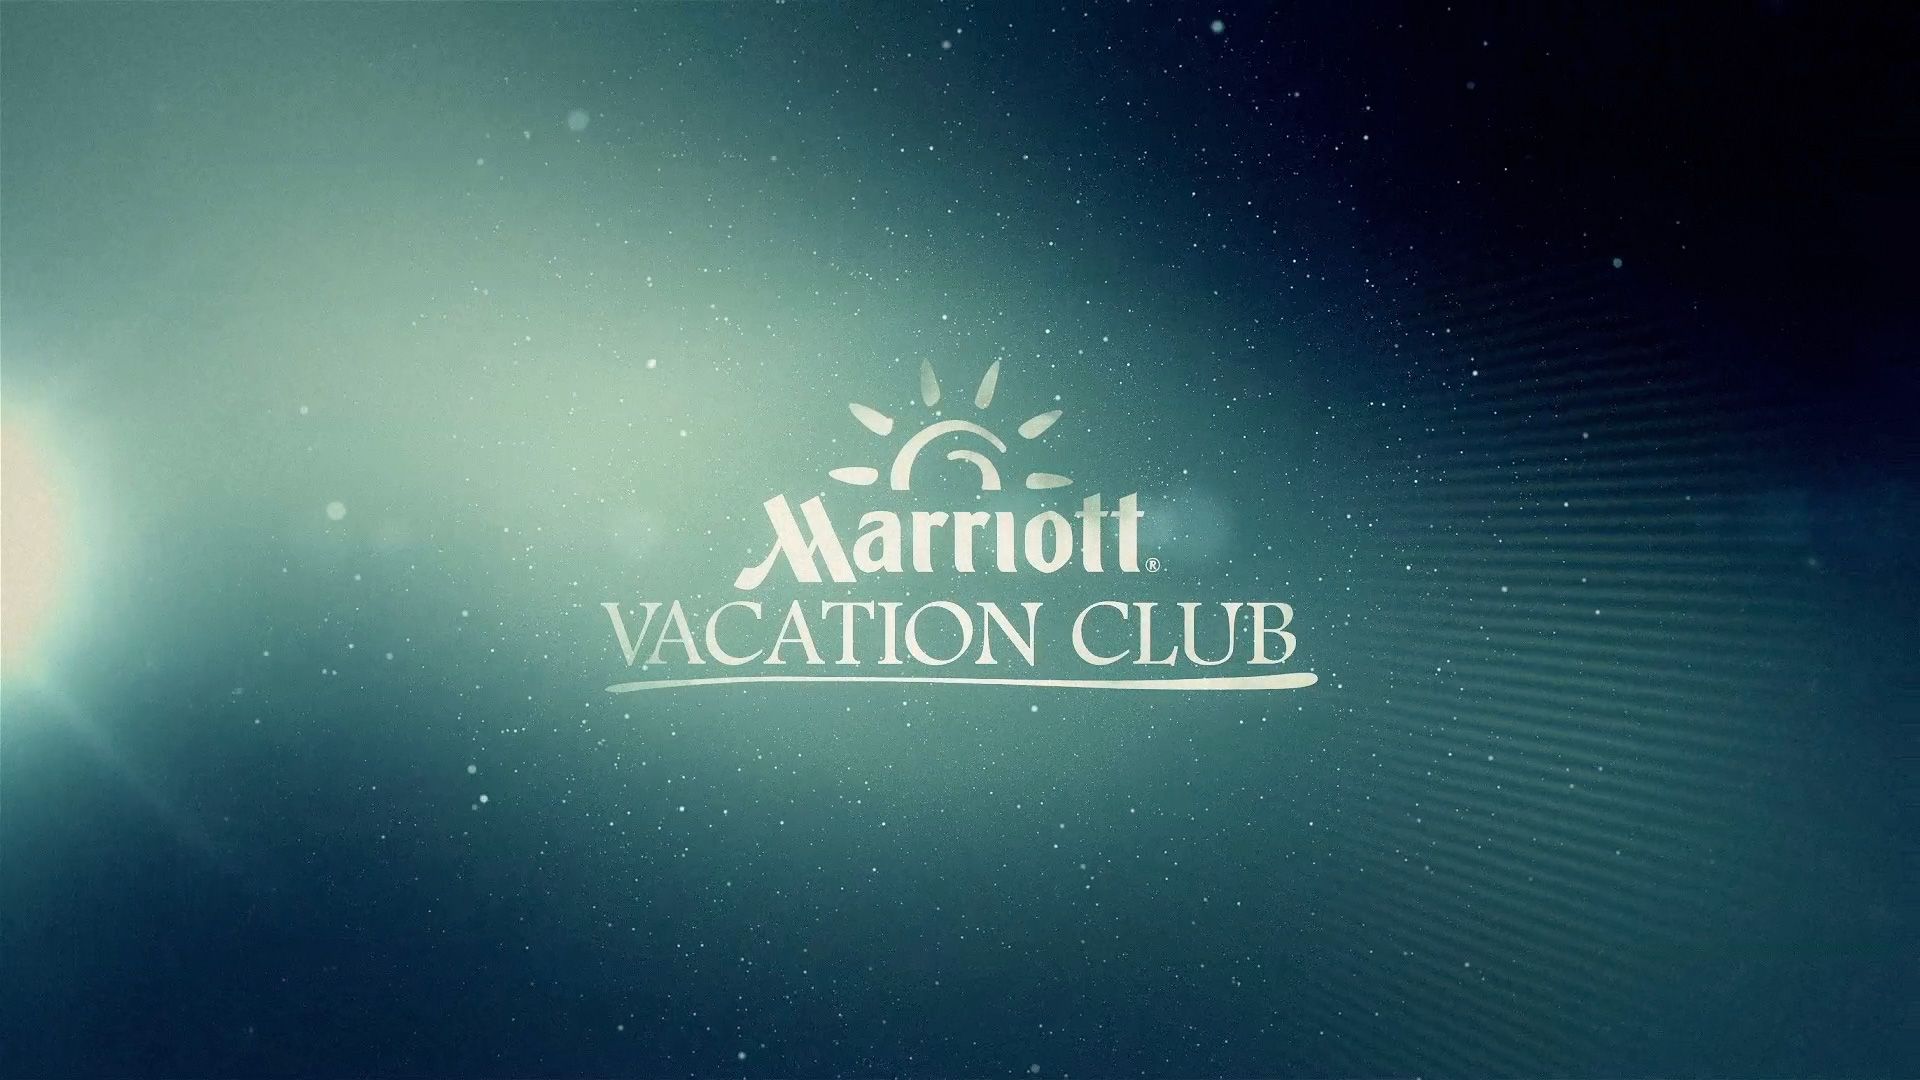 I Believe Marriott Vacation Club